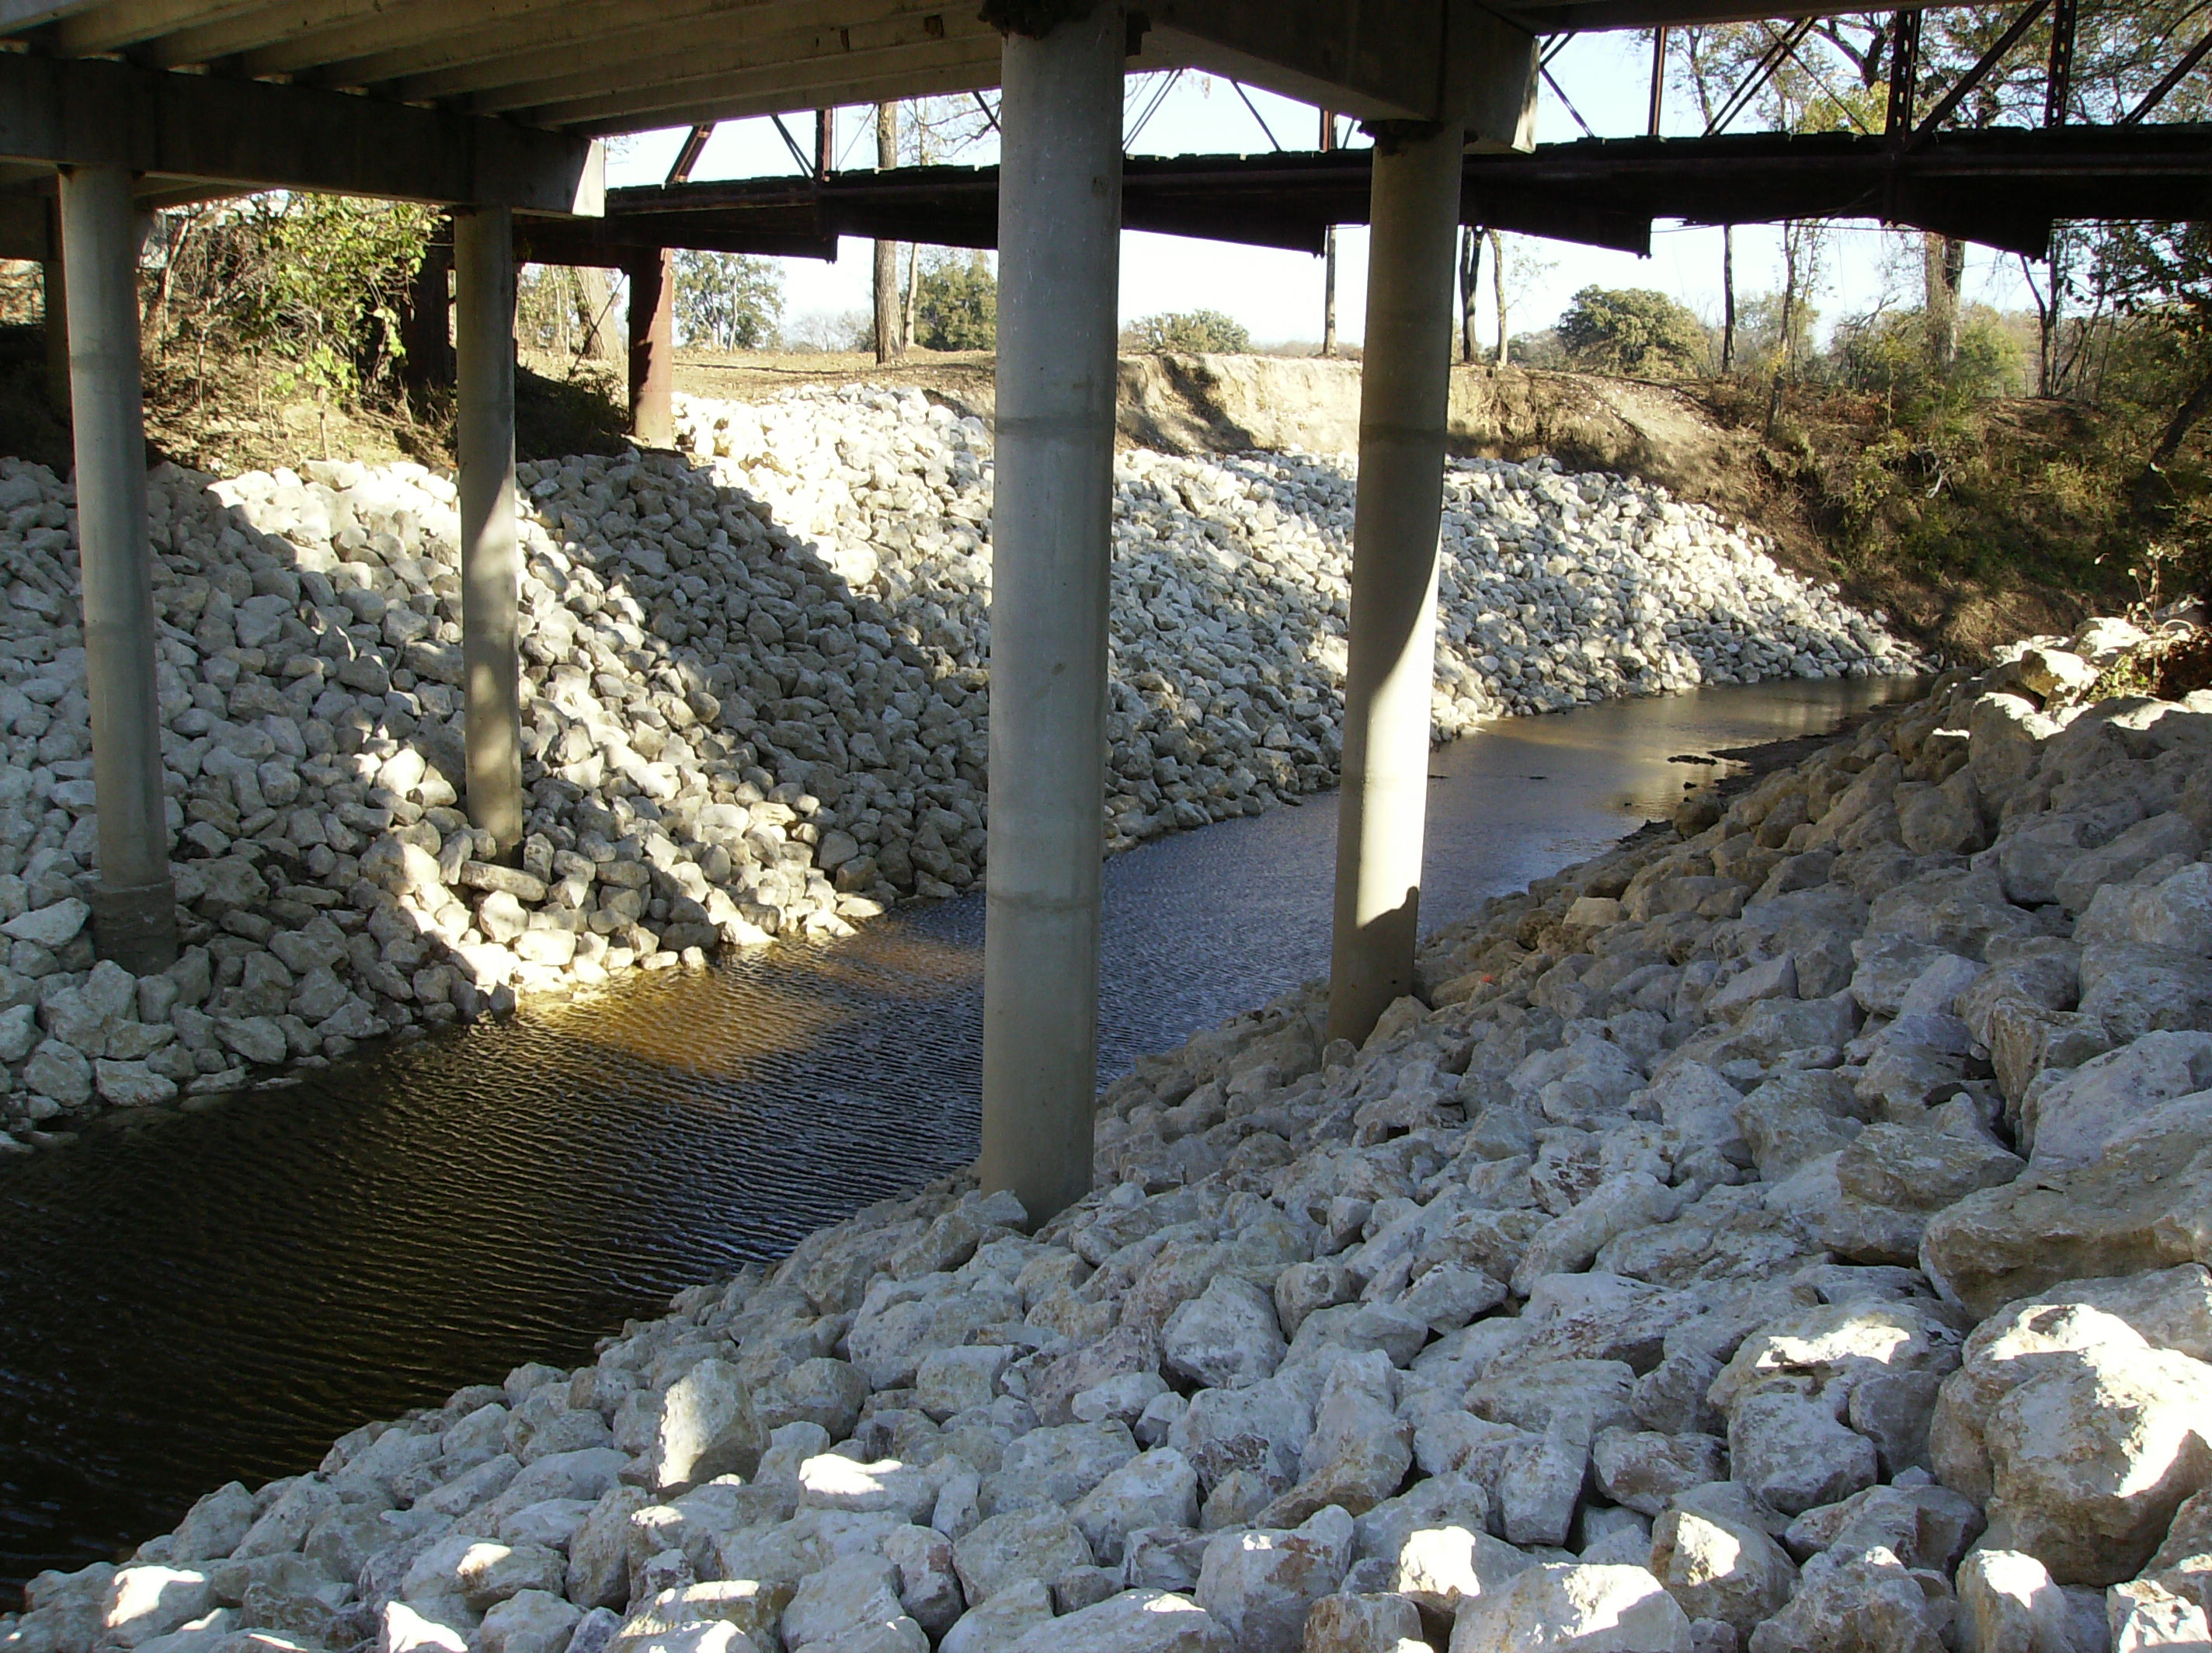 White rocks placed under the bridge